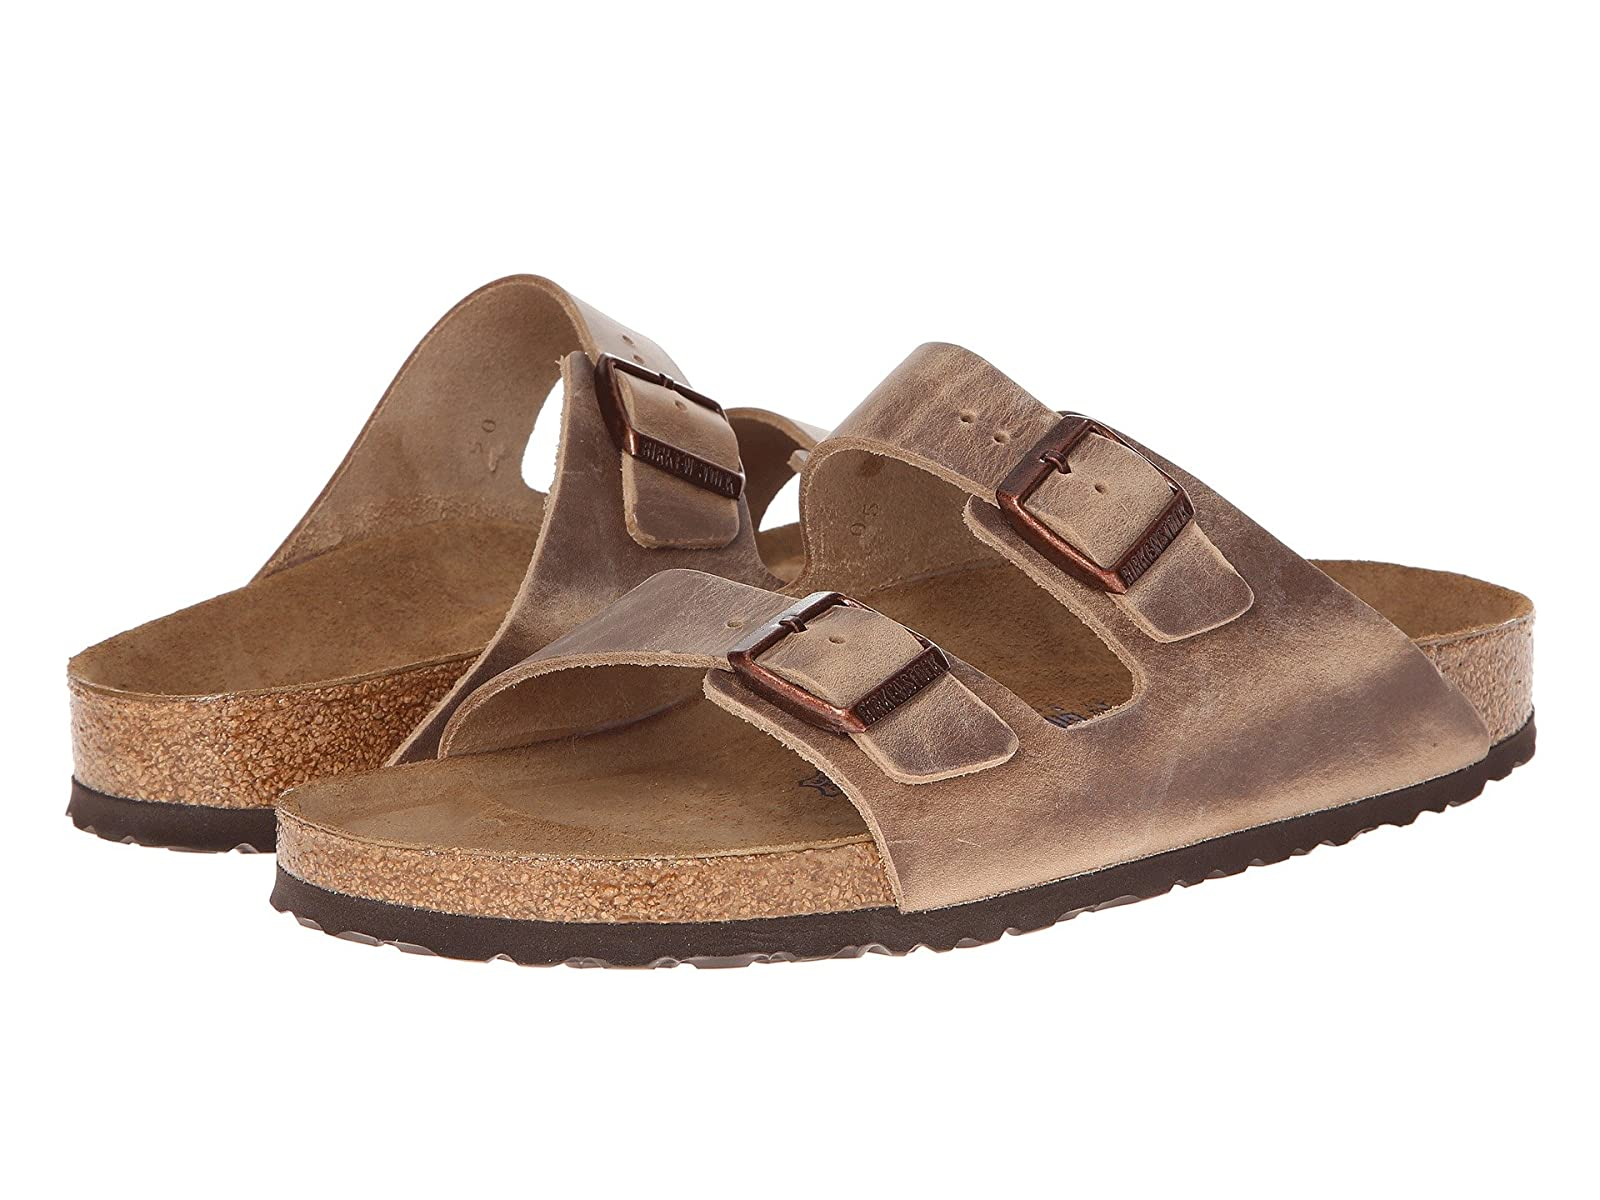 Birkenstock Arizona Soft Footbed - Leather (Unisex)Comfortable and distinctive shoes